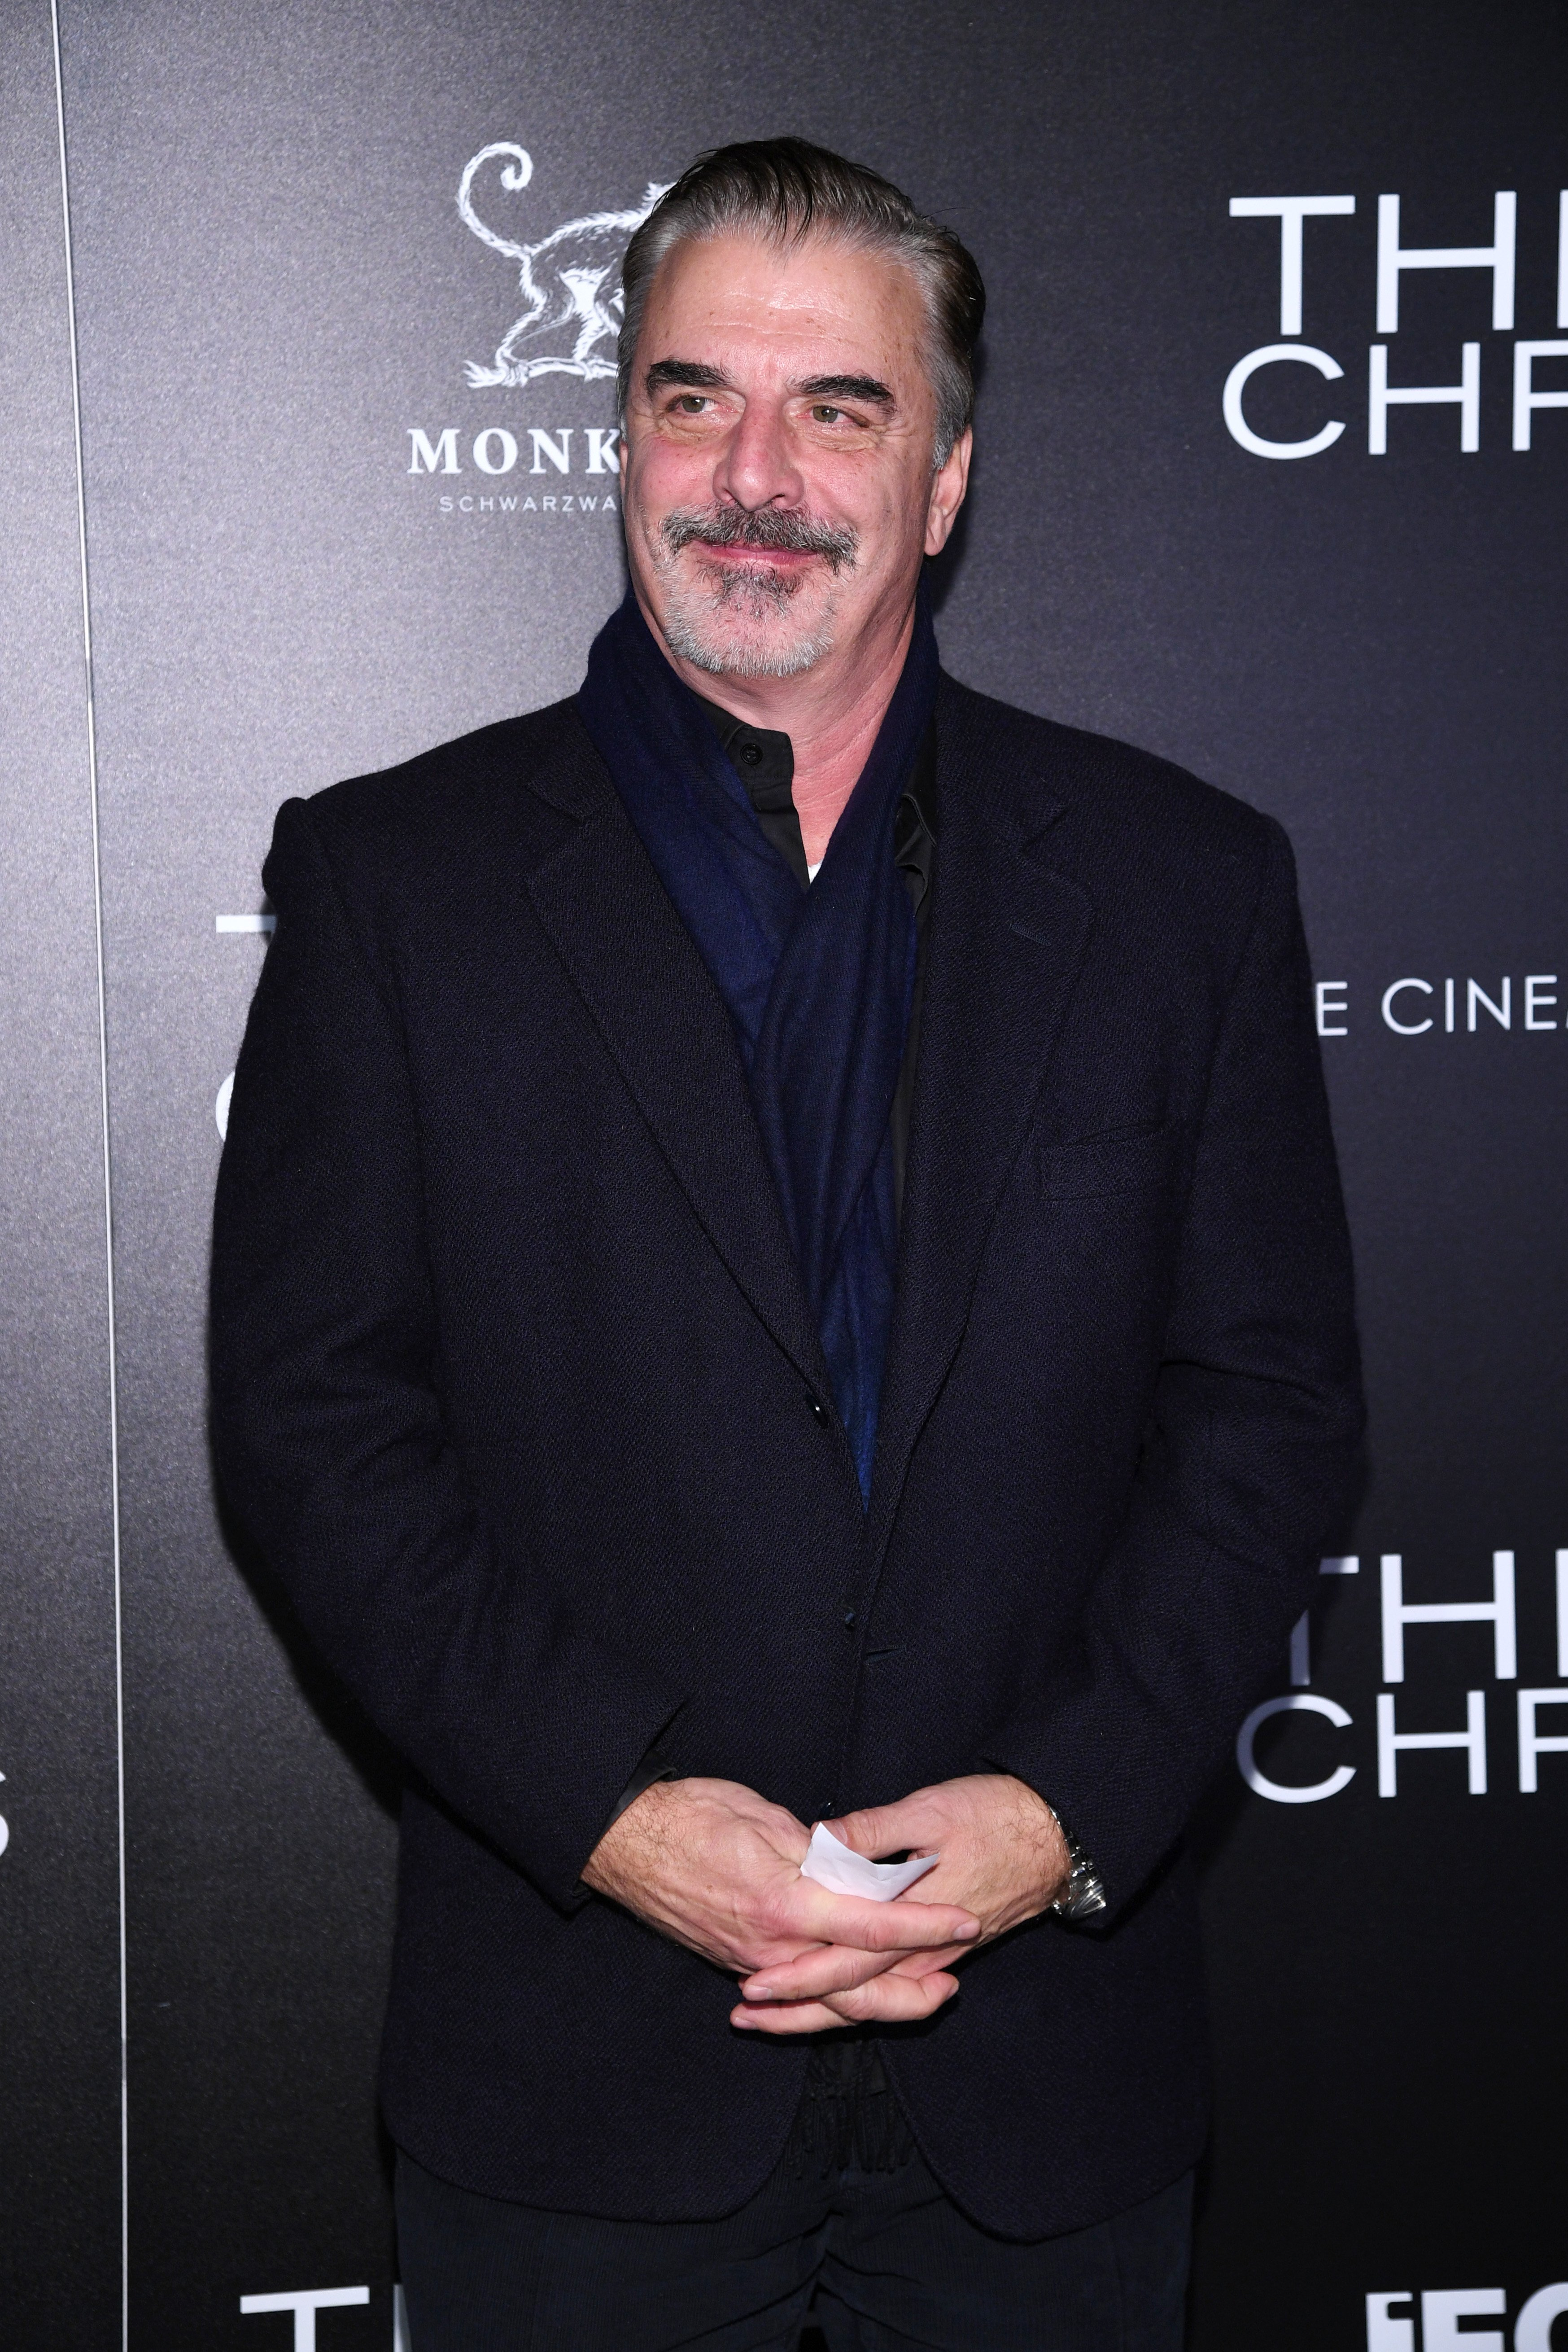 """Chris Noth spotted at the screening of """"Three Christs"""" in New York in January, 2020. 